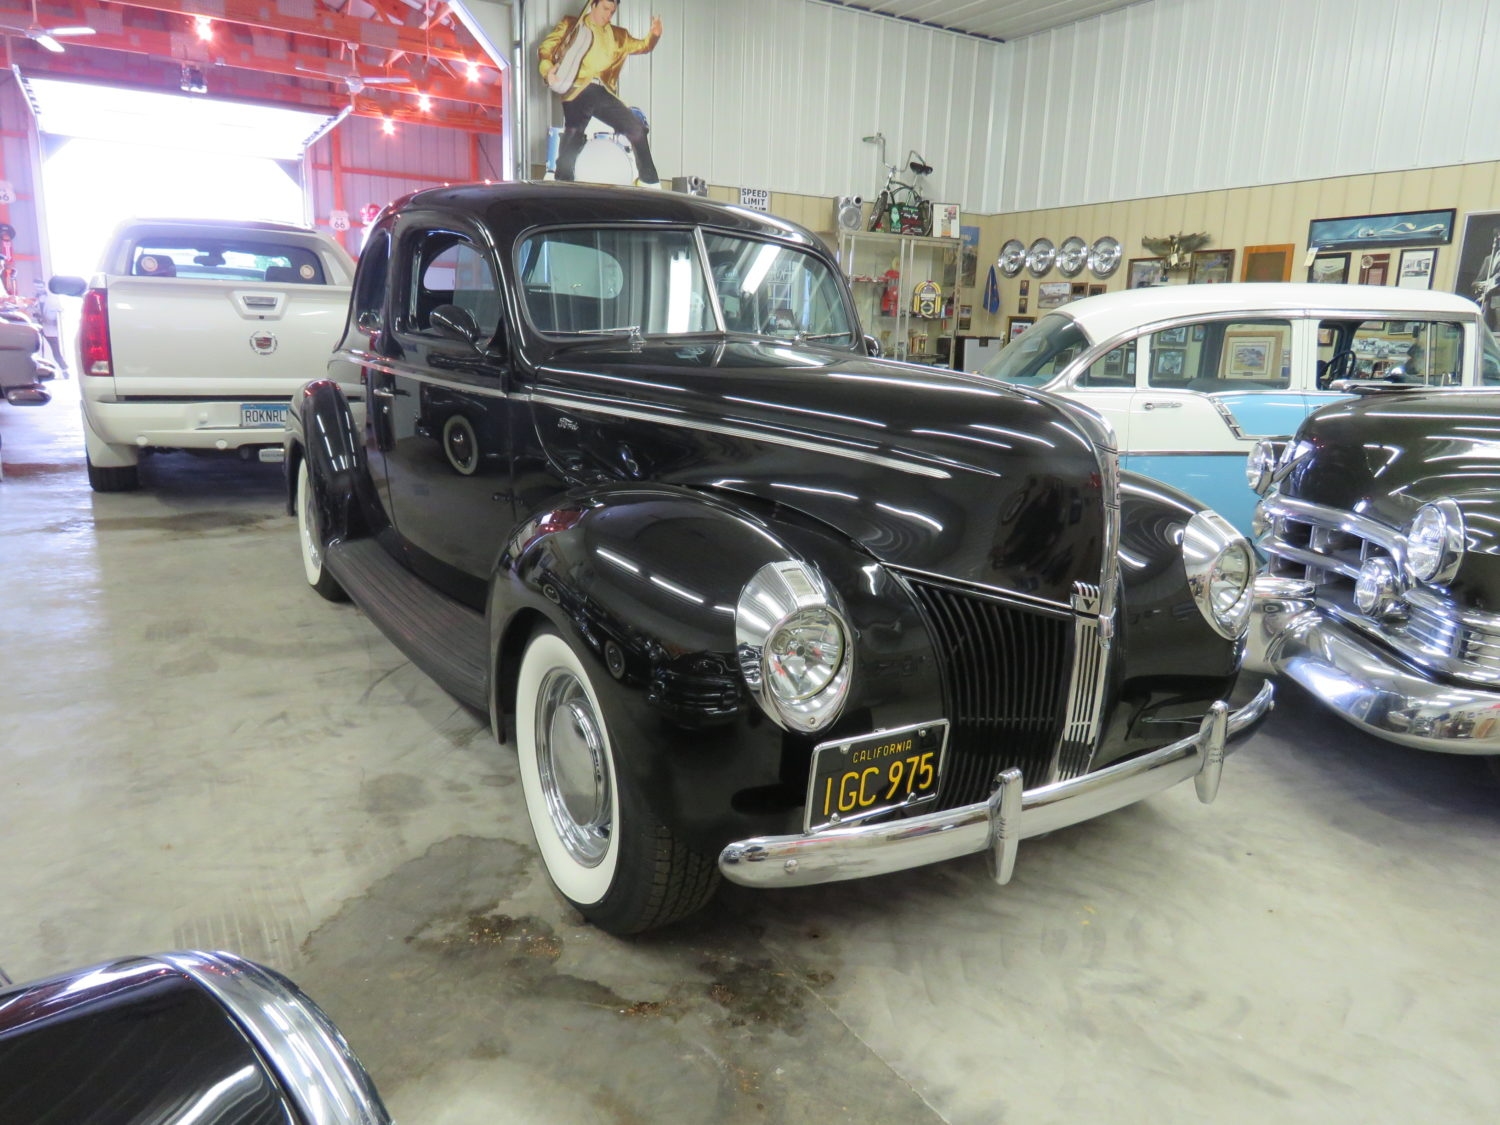 FABULOUS COLLECTOR CARS, MEMORABILIA, & MORE AT AUCTION-JERRY JOHNSON ESTATE! - image 2